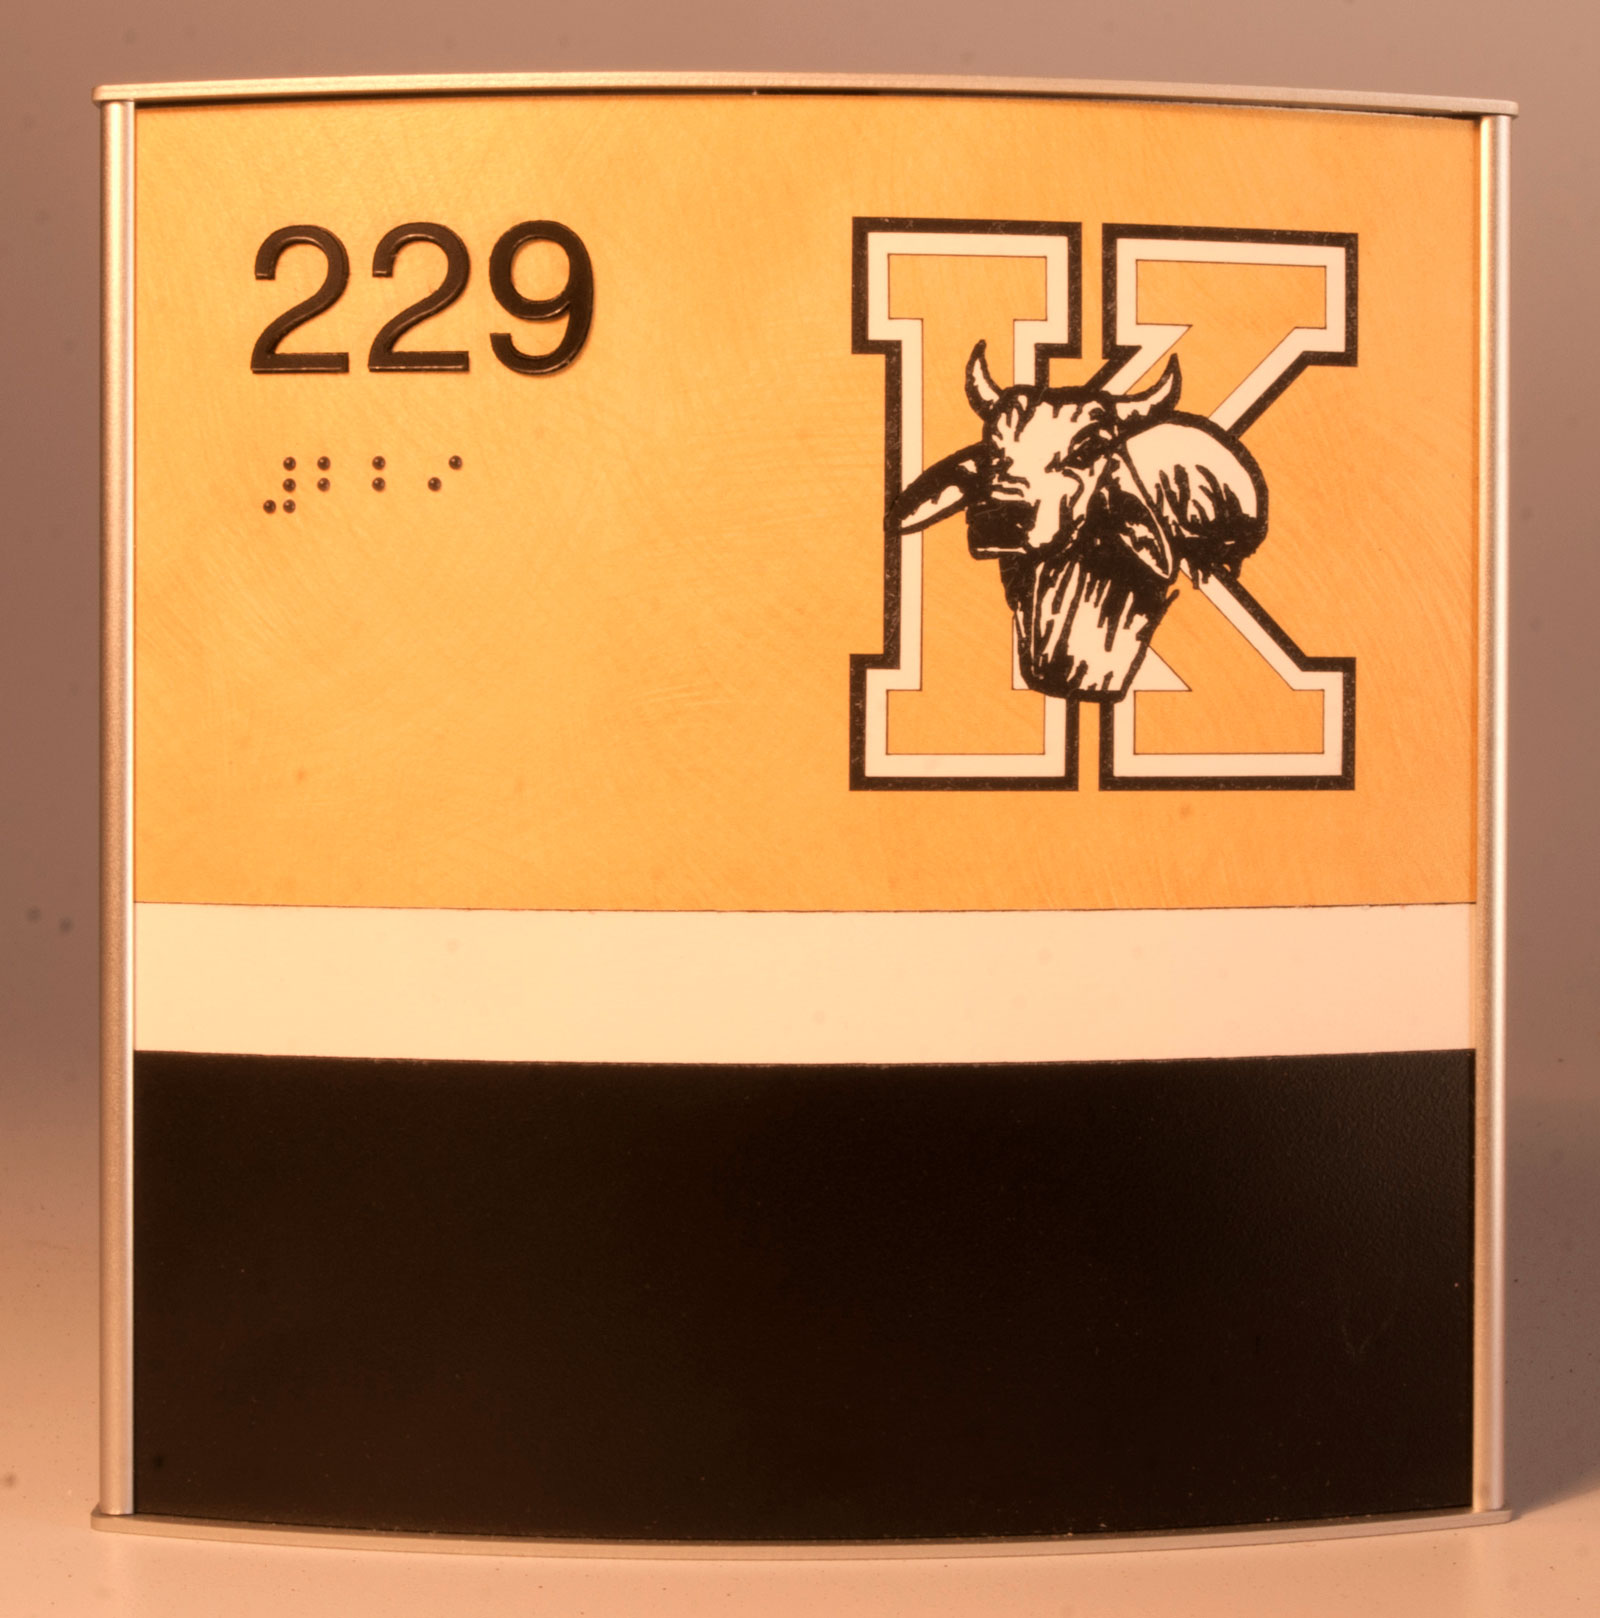 SP-CA-GP2-5x6  Satin Finished Frame, In-laid Laminates, Engraved Paint Filled Graphic